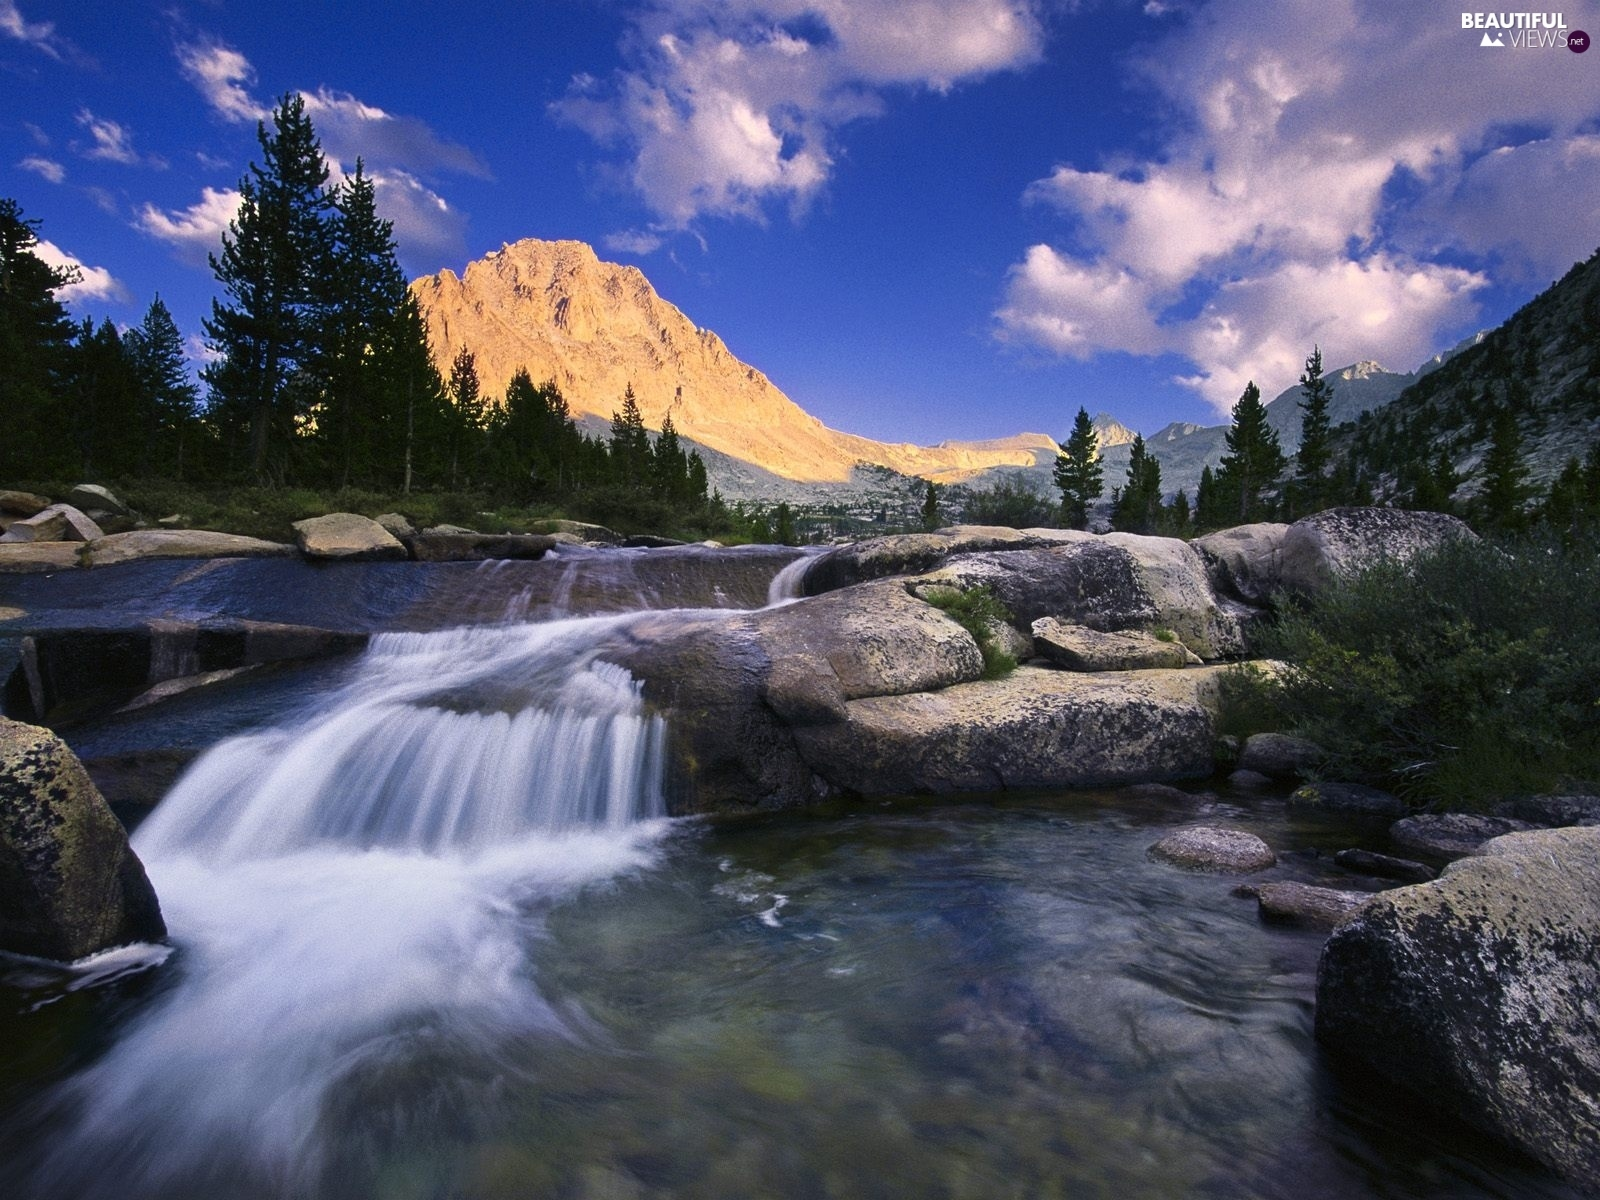 River, Mountains, forest, rocks